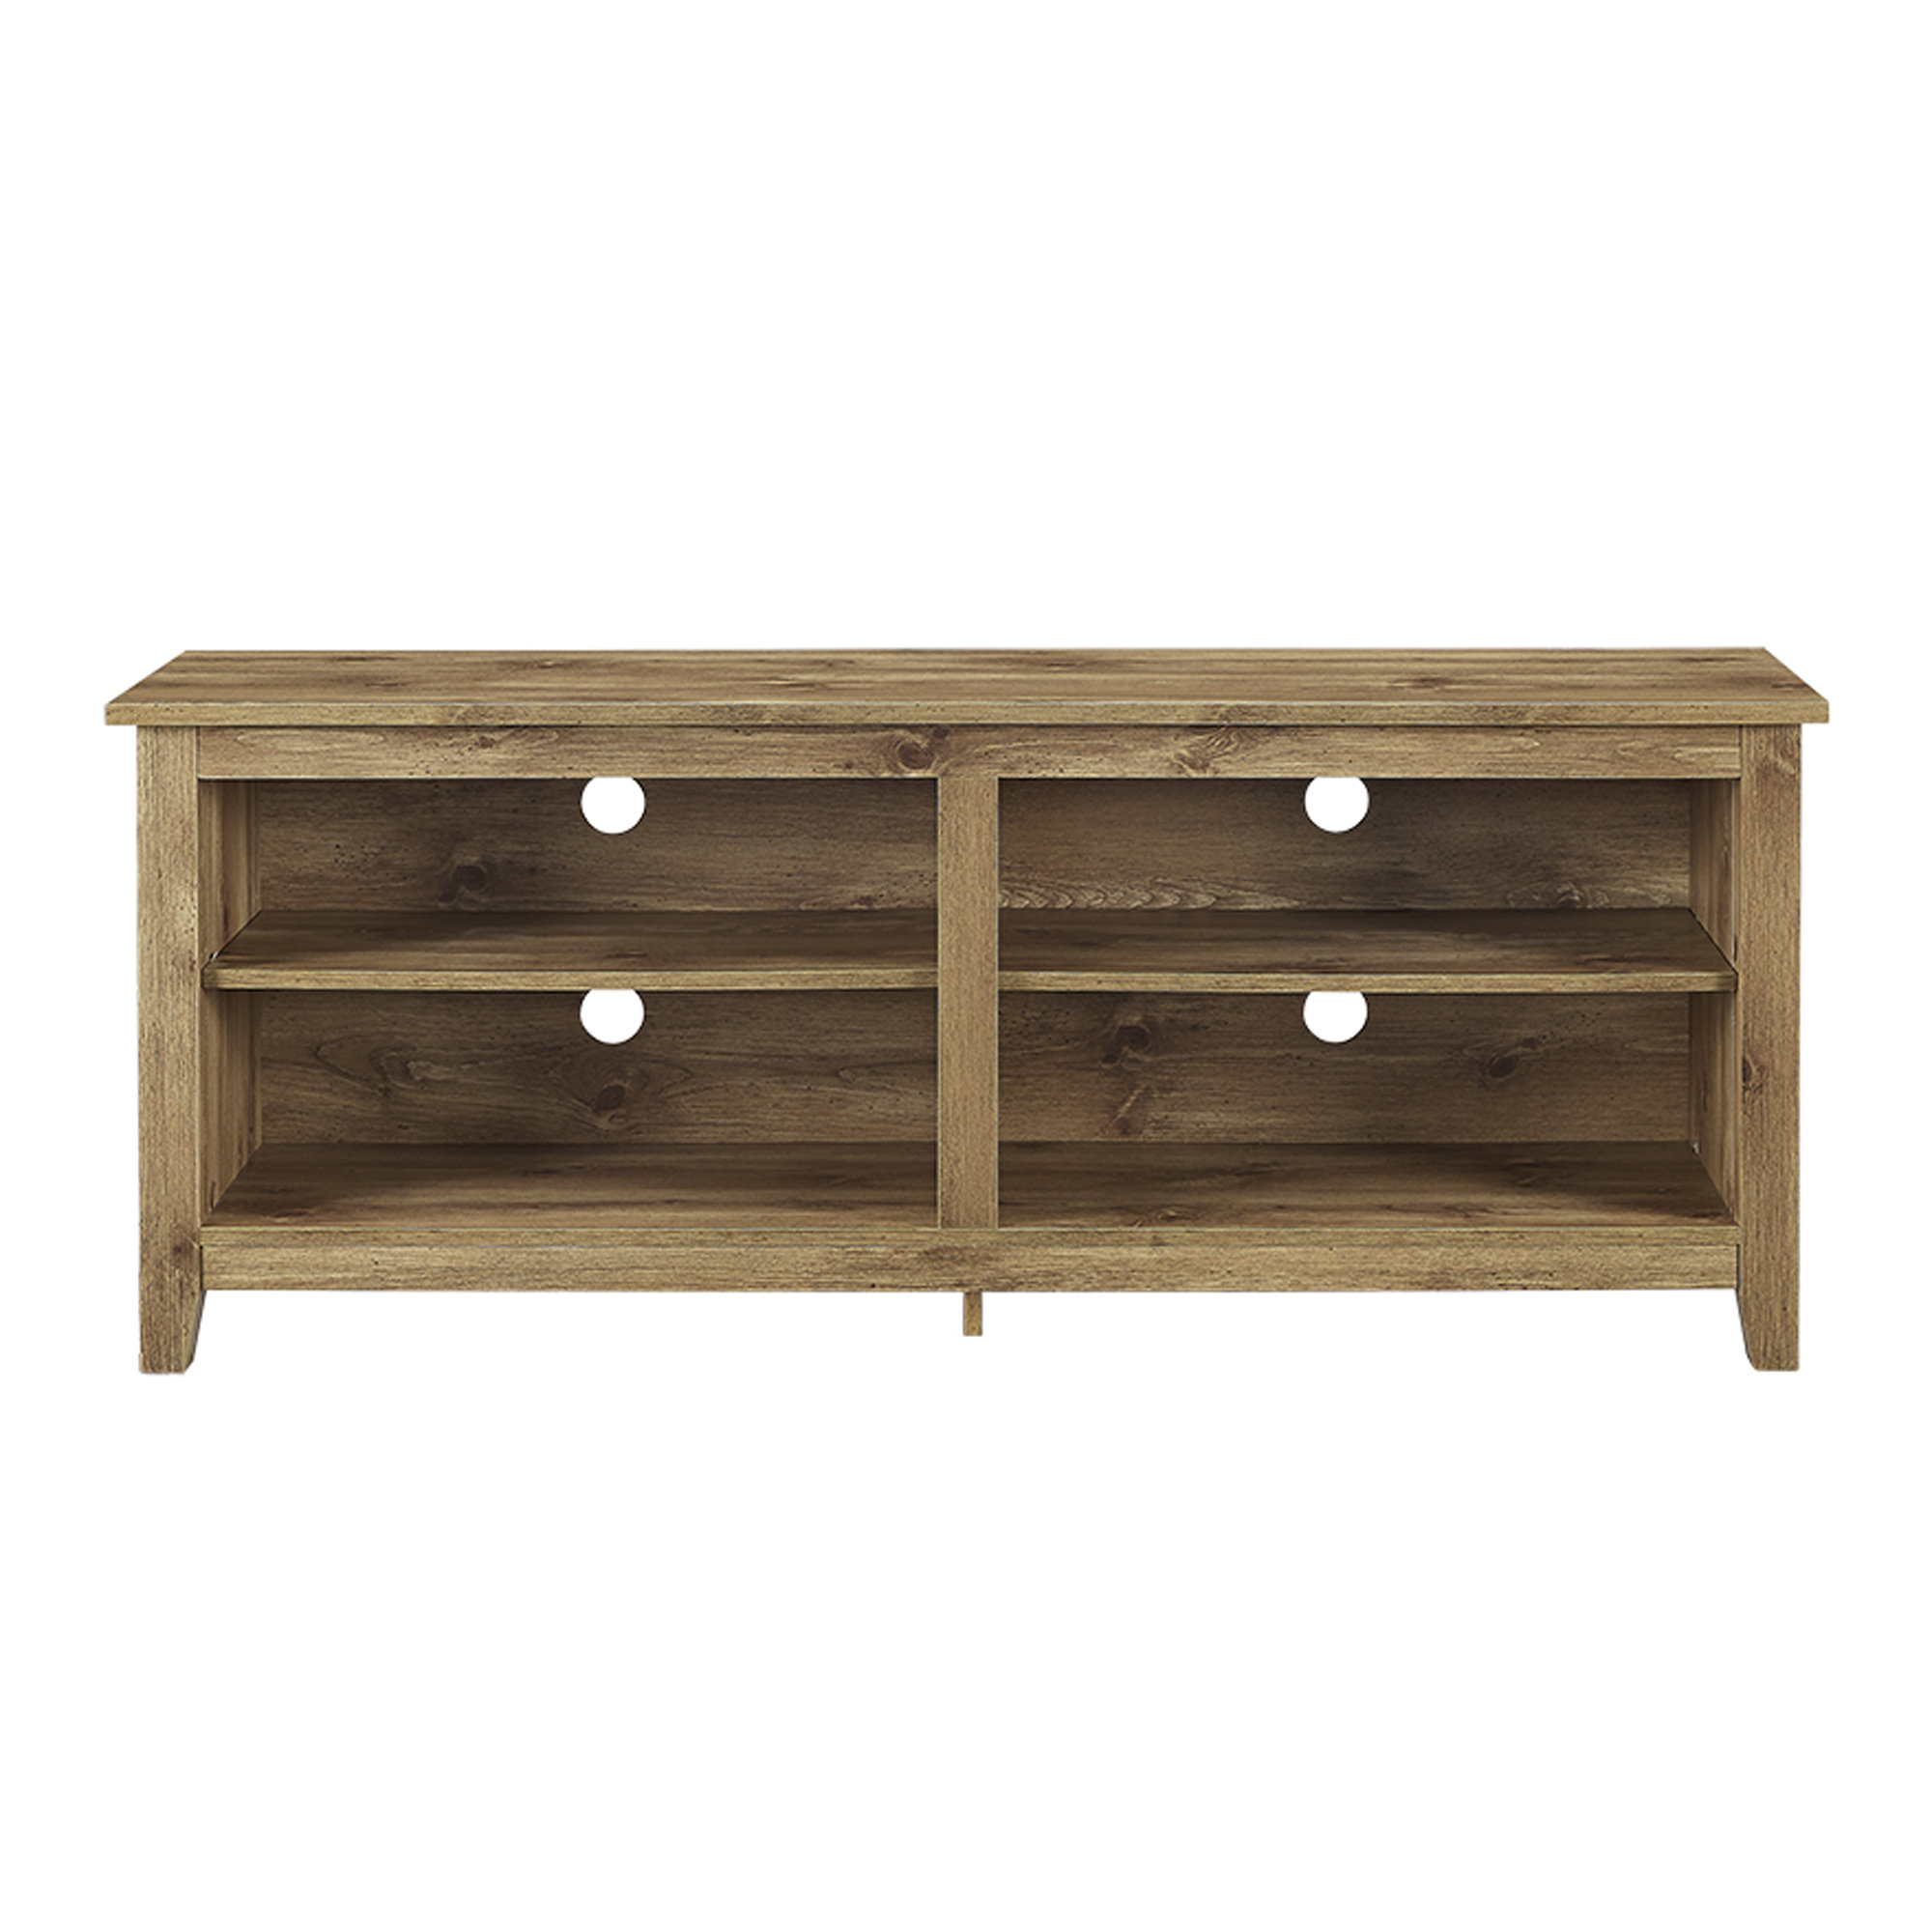 Tv Stands | Joss & Main With Regard To Annabelle Cream 70 Inch Tv Stands (Photo 30 of 30)